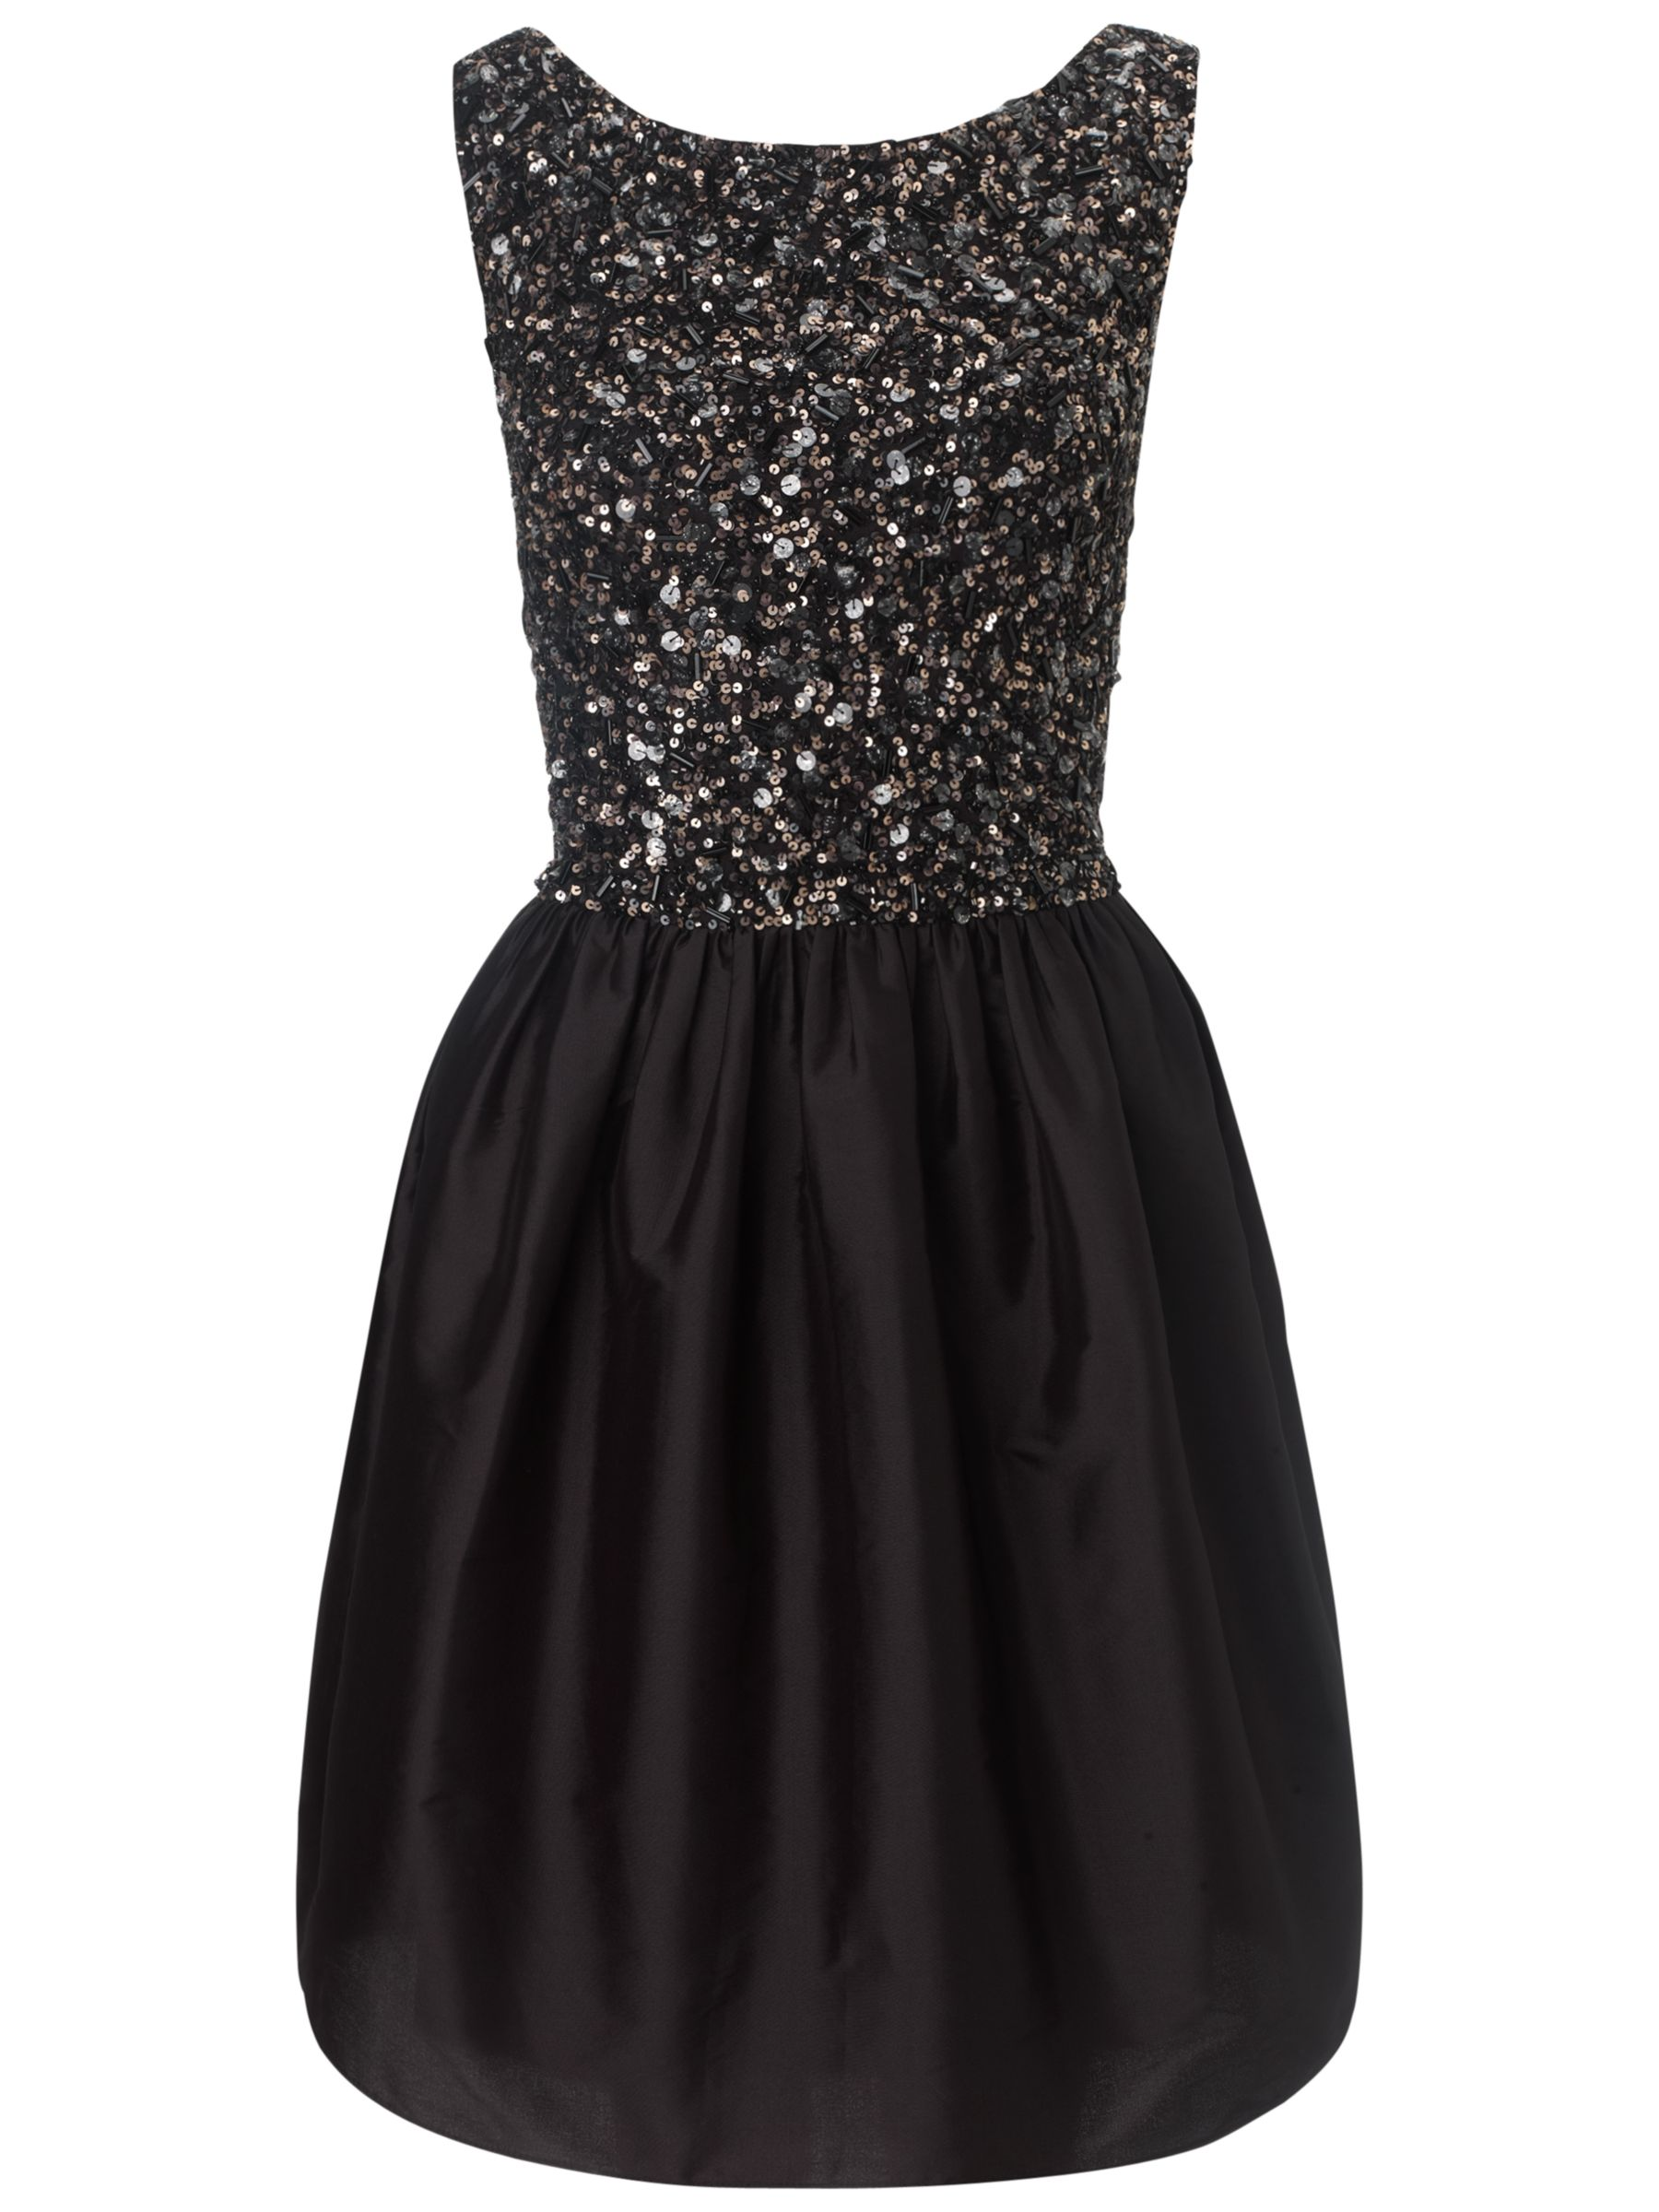 ariella freya beaded prom short dress black, ariella, freya, beaded, prom, short, dress, black, 16 12 18 8 10 14, women, plus size, womens dresses, party outfits, party dresses, 1697260